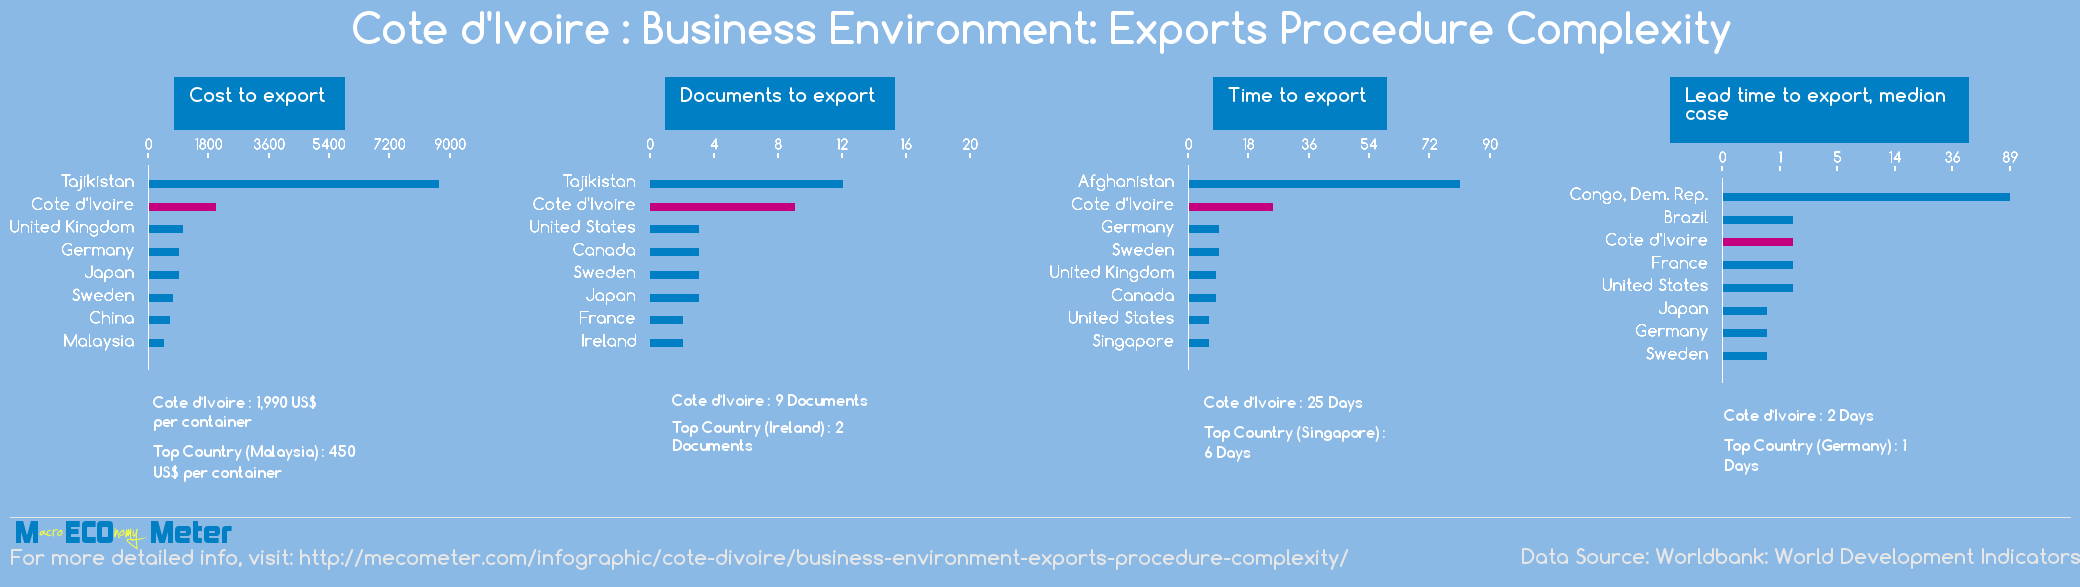 Cote d'Ivoire : Business Environment: Exports Procedure Complexity